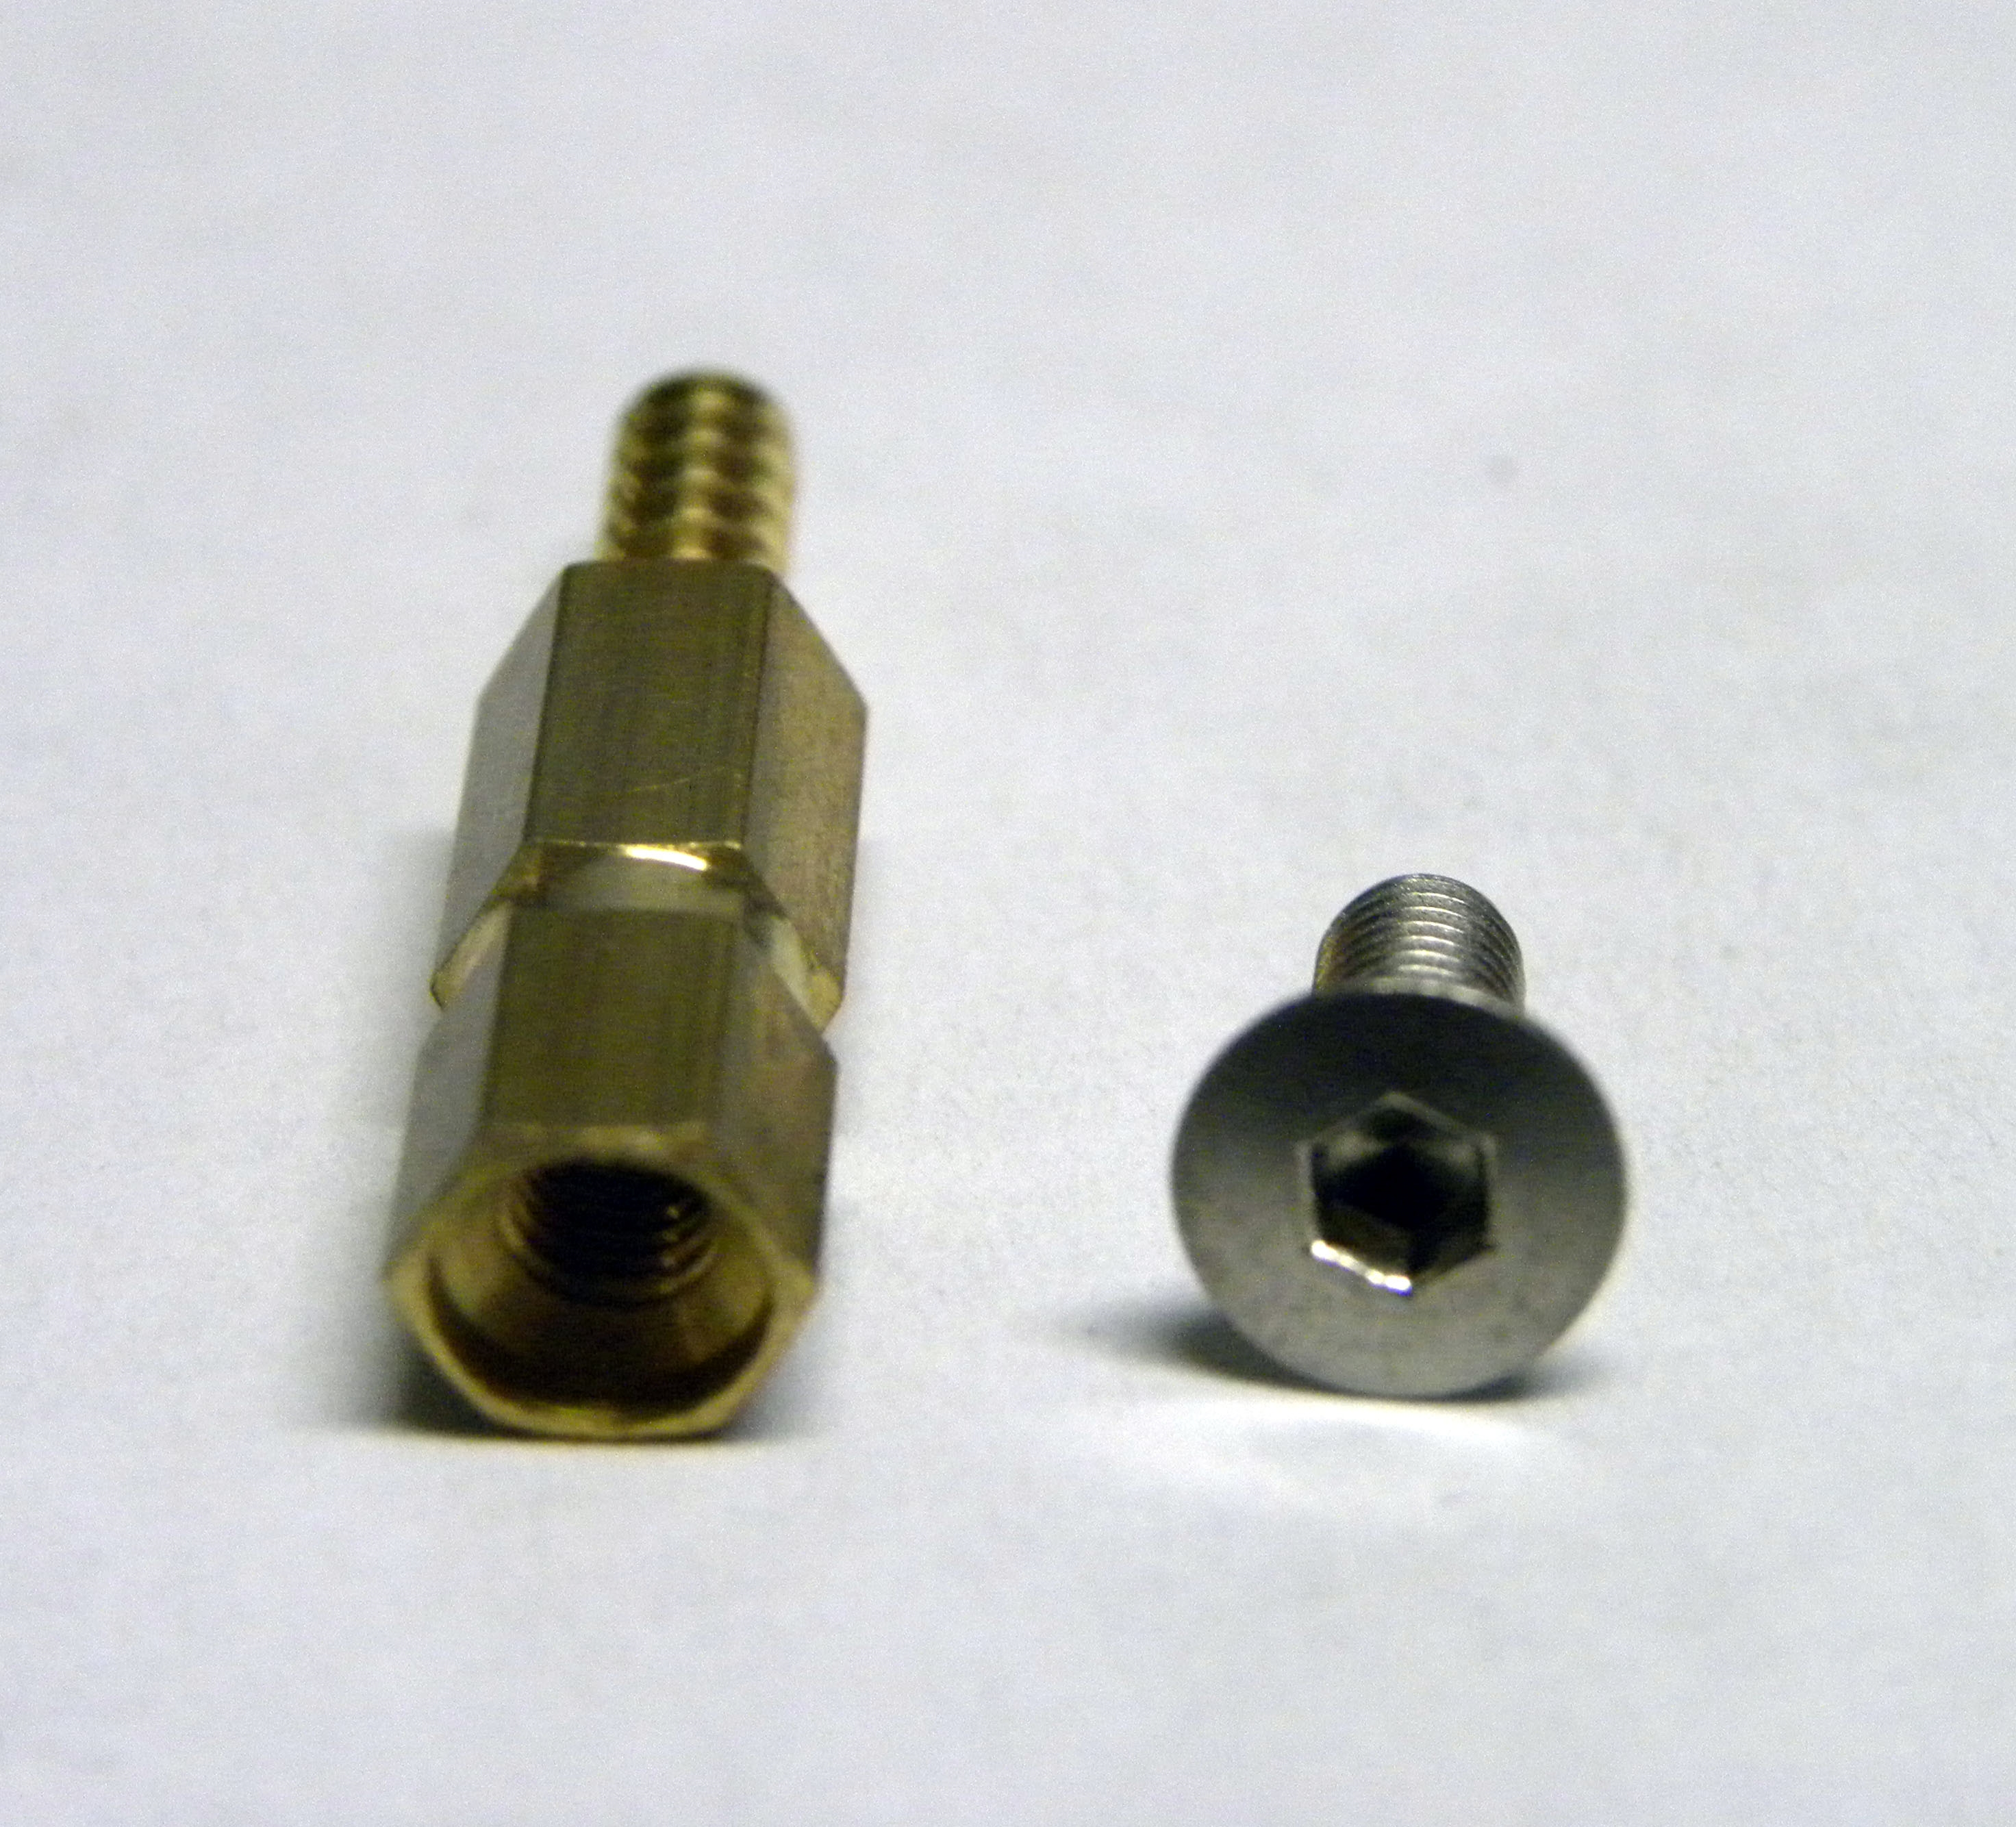 vestax-6-sided-hex-screw